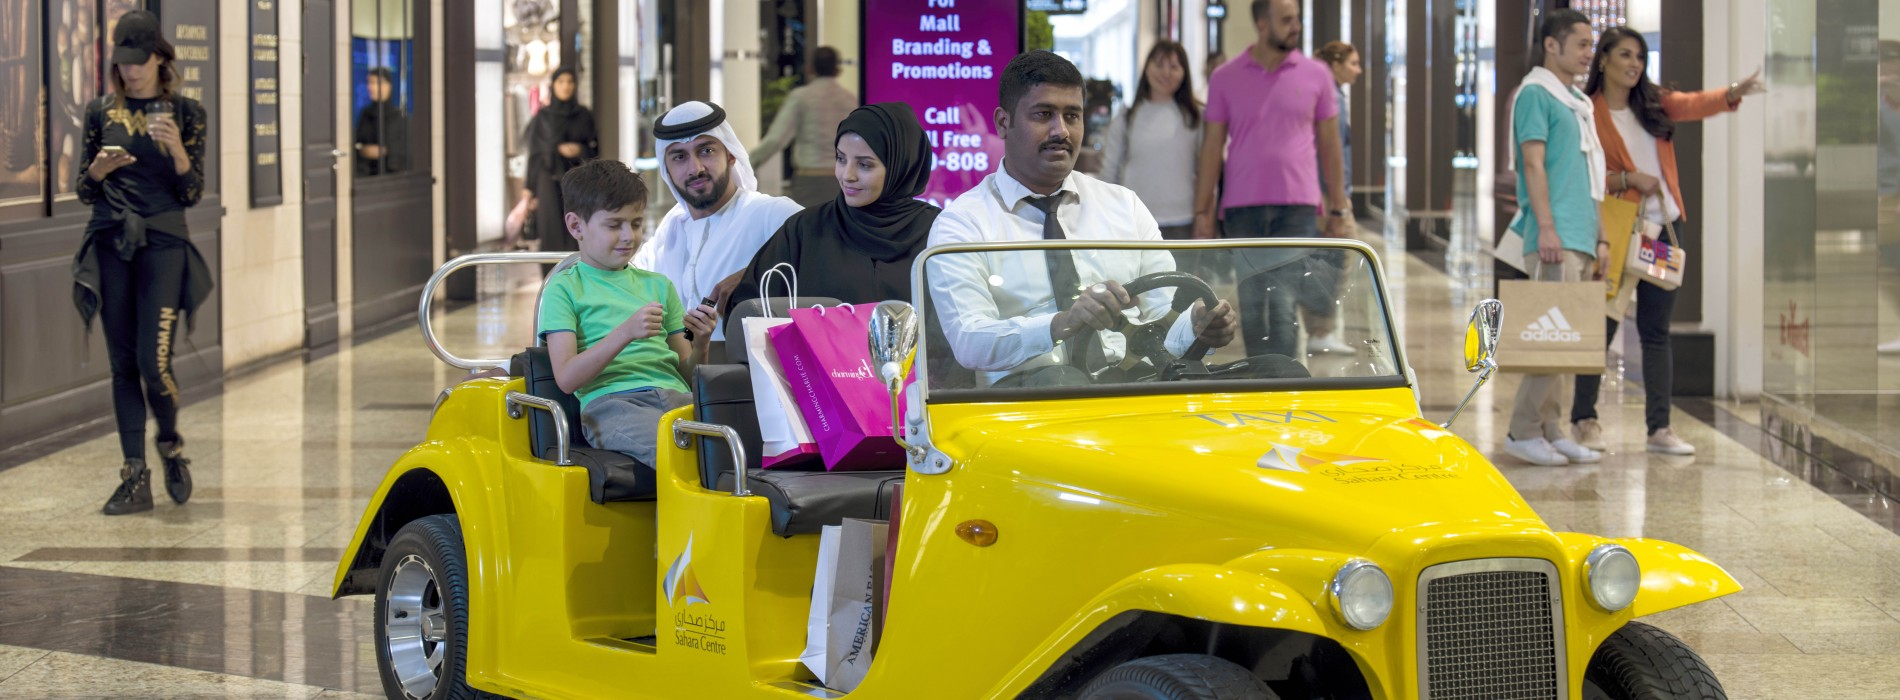 Enjoy Sharjah's shopping experience at its modern malls and traditional souks